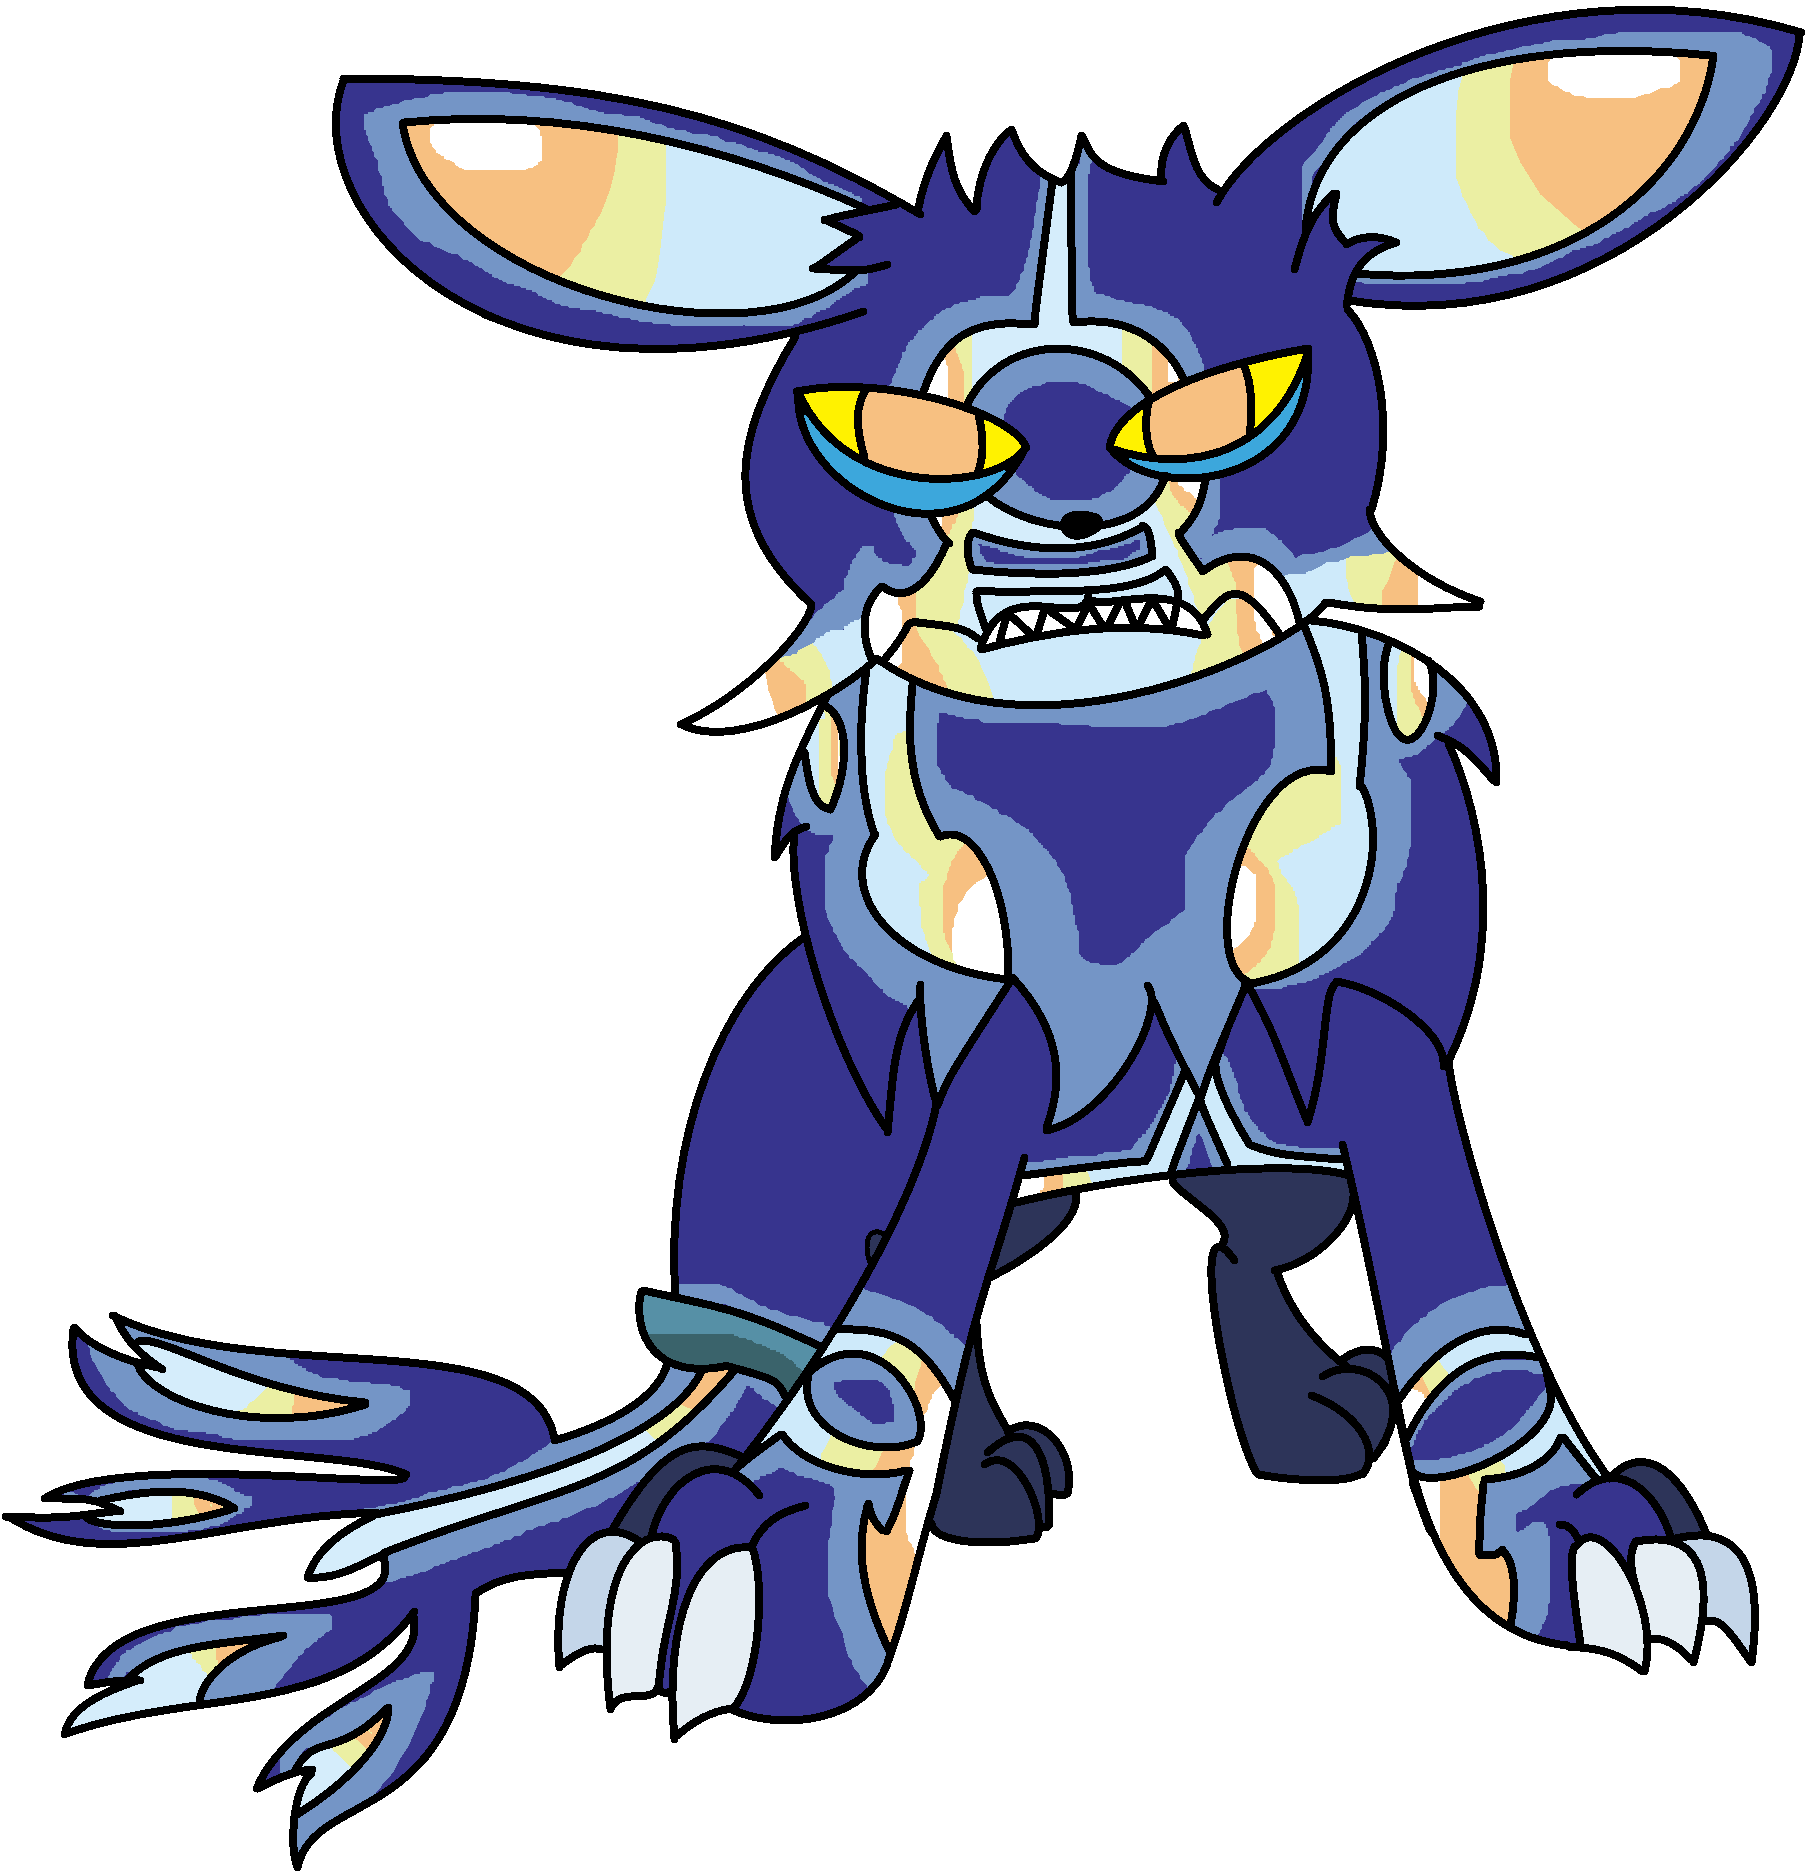 Primal Kyogre primal kyogre and eevee fusionhalo-the-eevee on deviantart